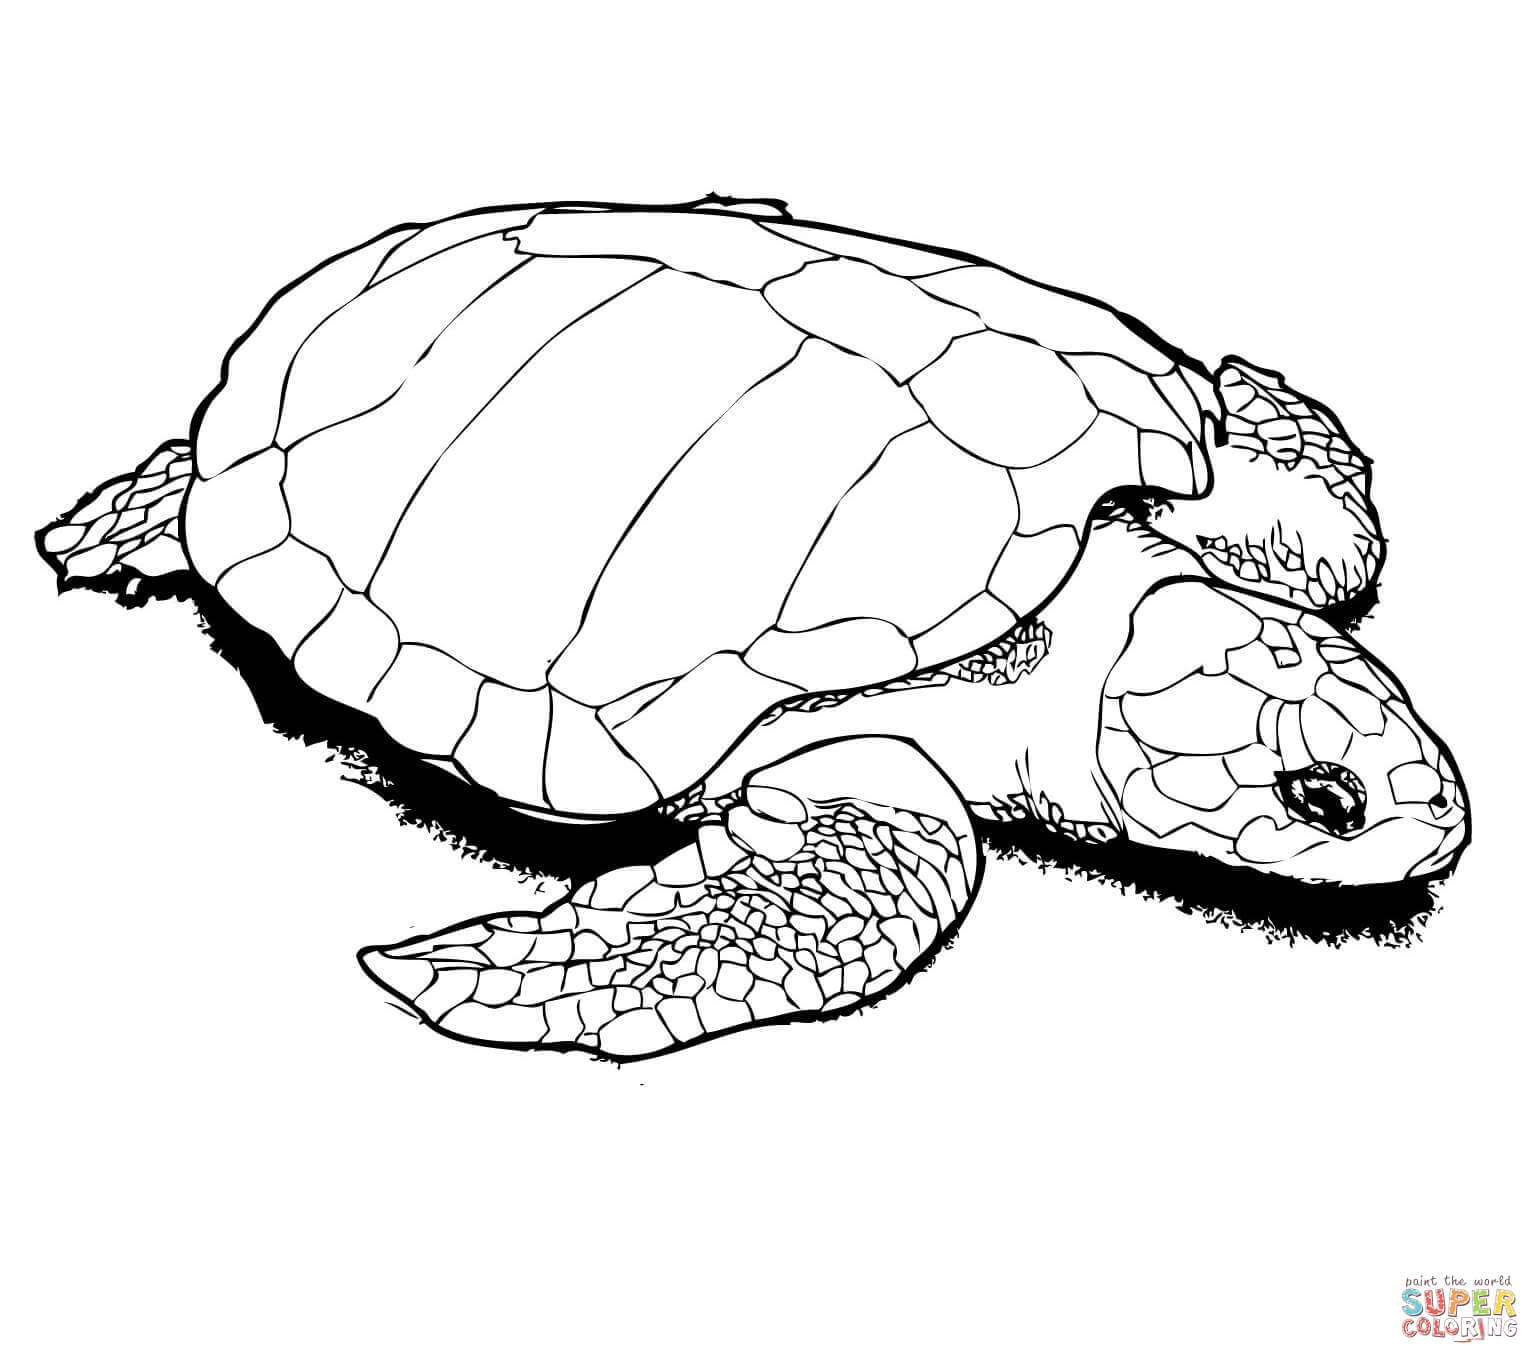 tortoise coloring page cute turtle coloring pages coloring home page coloring tortoise